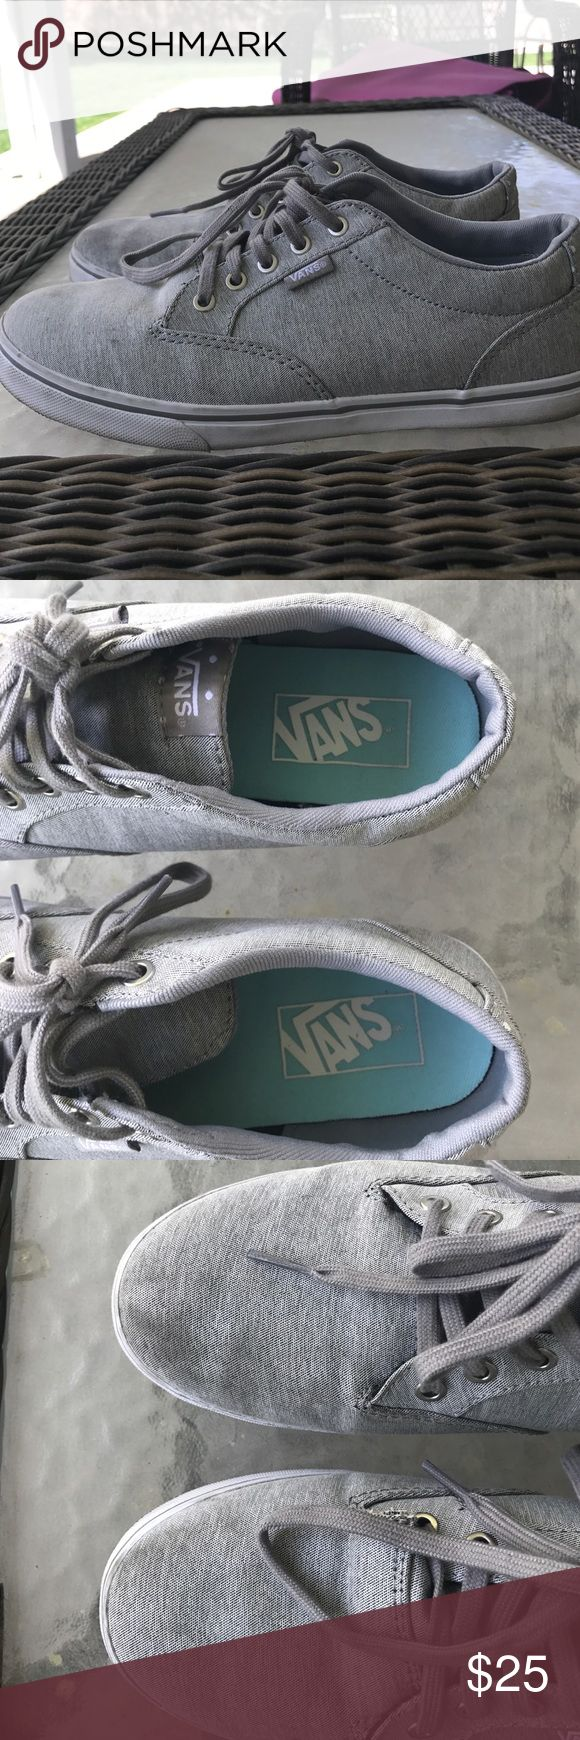 Gray Vans Size 7.5 Good used condition, normal wear on the bottom and sides, but only worn maybe two times so the sides are still pretty white. Top of the shoes have a slight discolouration as noted in the picture. Overall a good buy Vans Shoes Sneakers